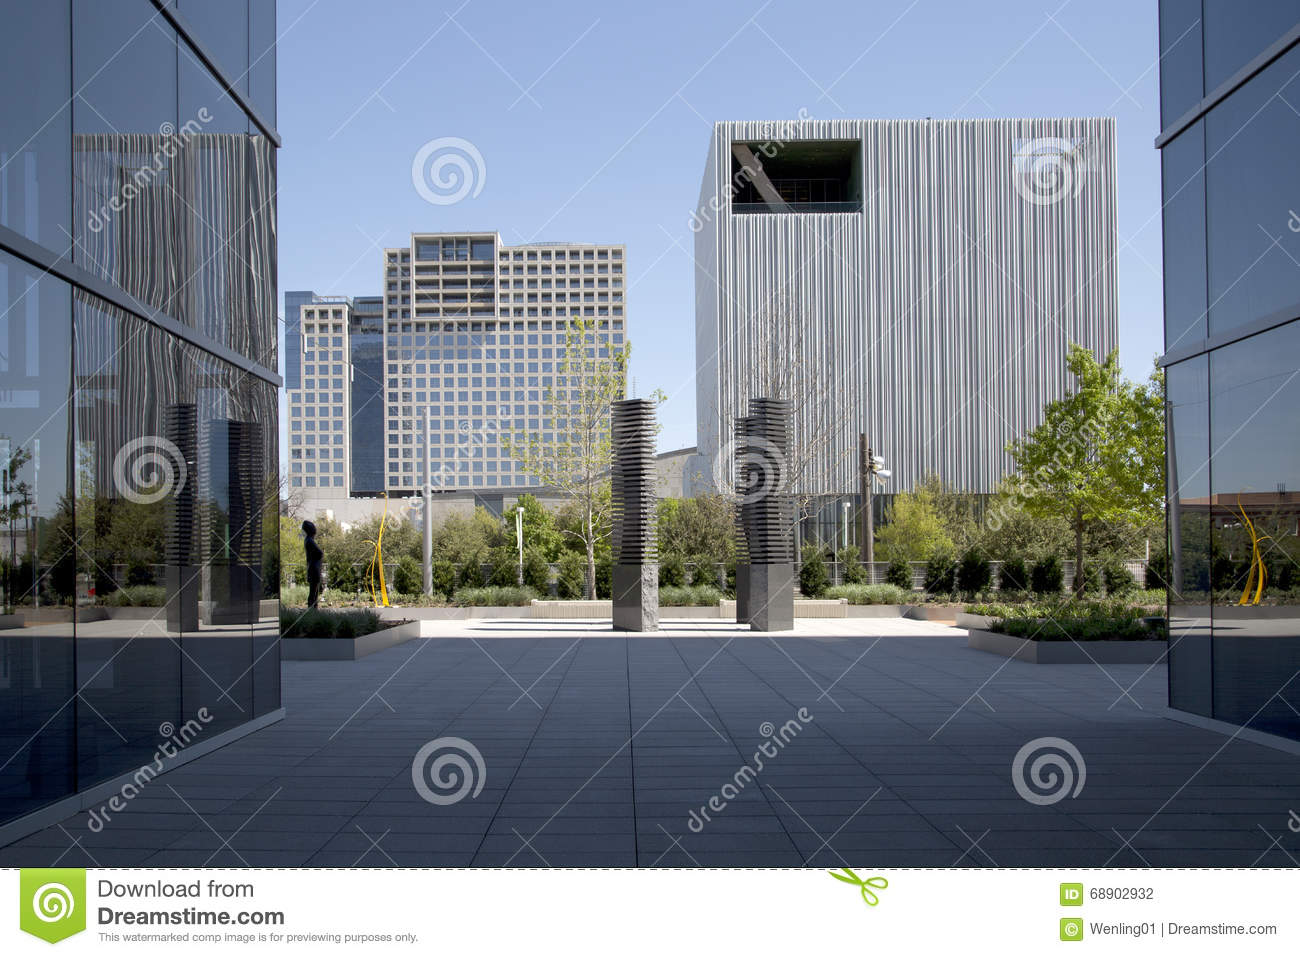 Le Beau Centre Ville De La Ville Dallas Photo stock